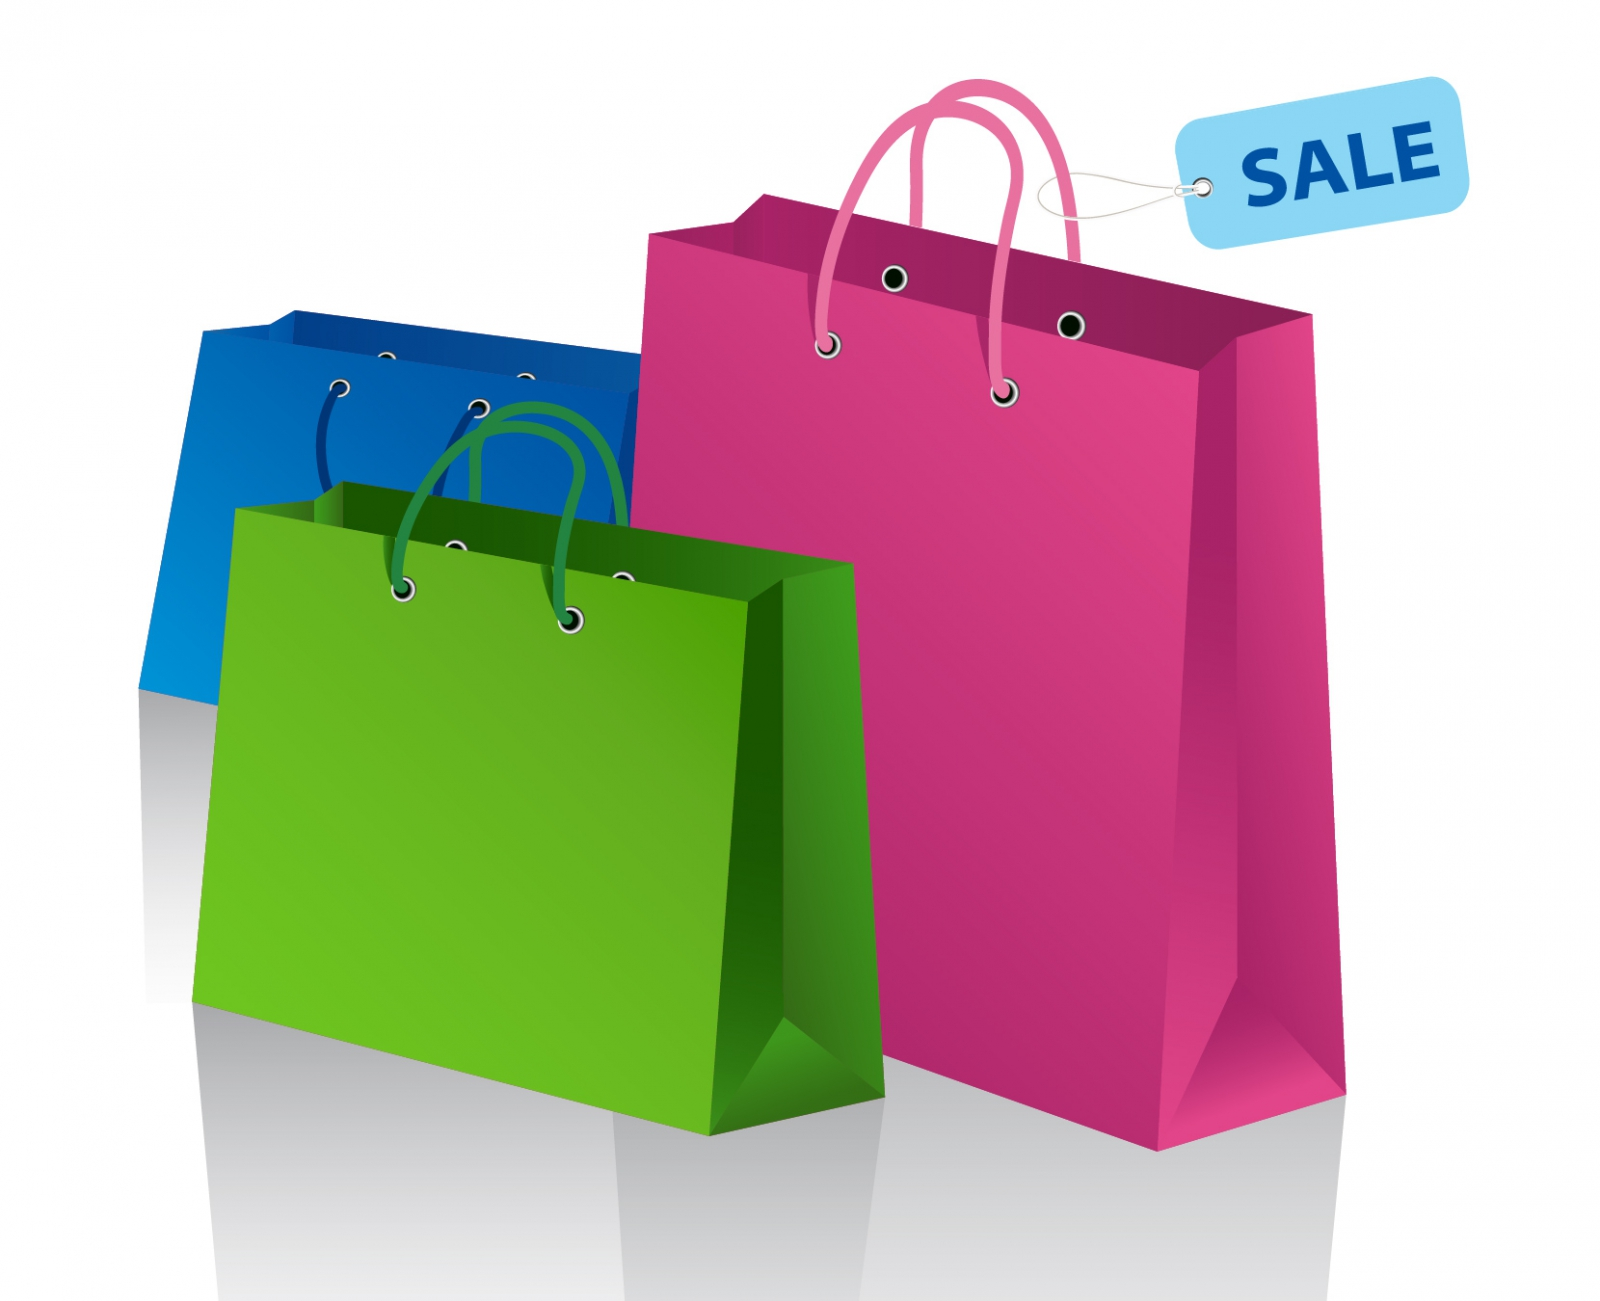 Shopping bags clipart clipart transparent stock 98+ Shopping Bags Clipart | ClipartLook clipart transparent stock